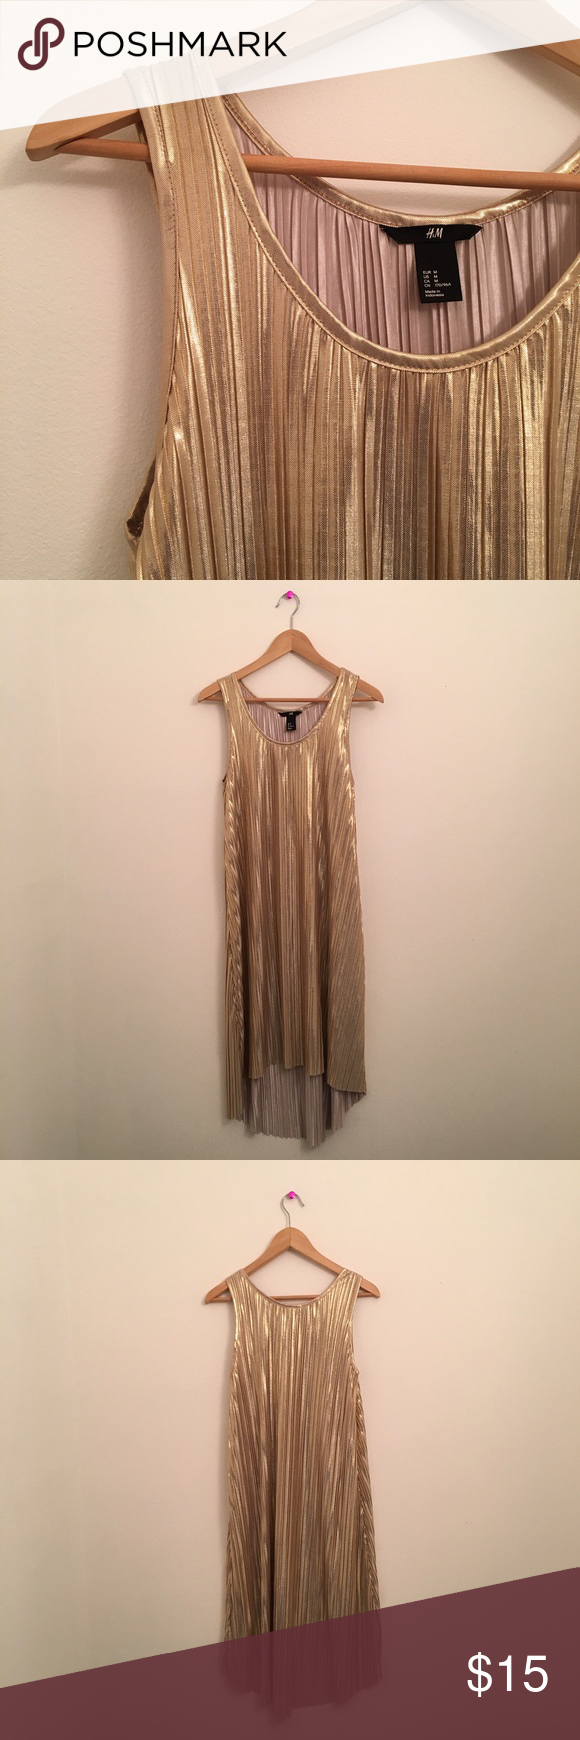 ca279444dd Selling this H & M Shiny Gold Pleated Dress Sz. M on Poshmark! My username  is: thegarbmovement. #shopmycloset #poshmark #fashion #shopping #style  #forsale ...